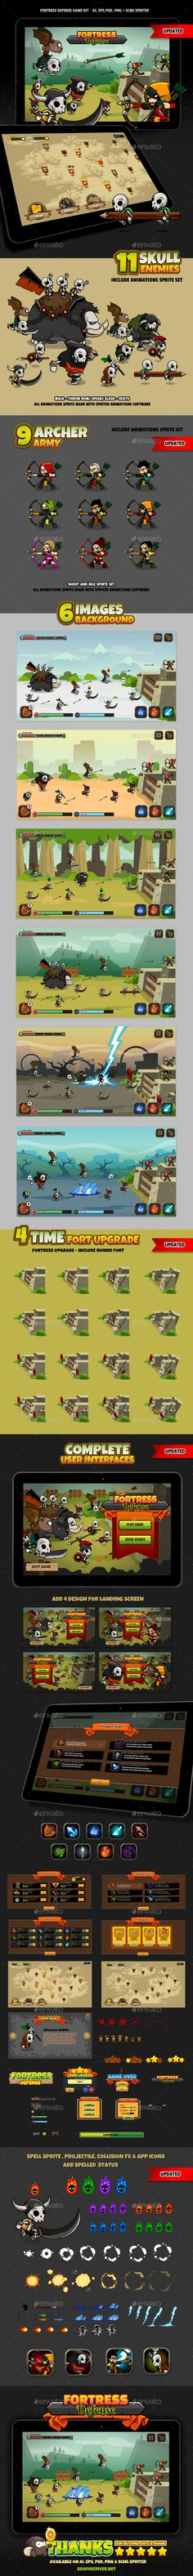 Fortress Defense | Download: https://graphicriver.net/item/fortress-defense/17522829?ref=sinzo #Game #Kits Game #Assets